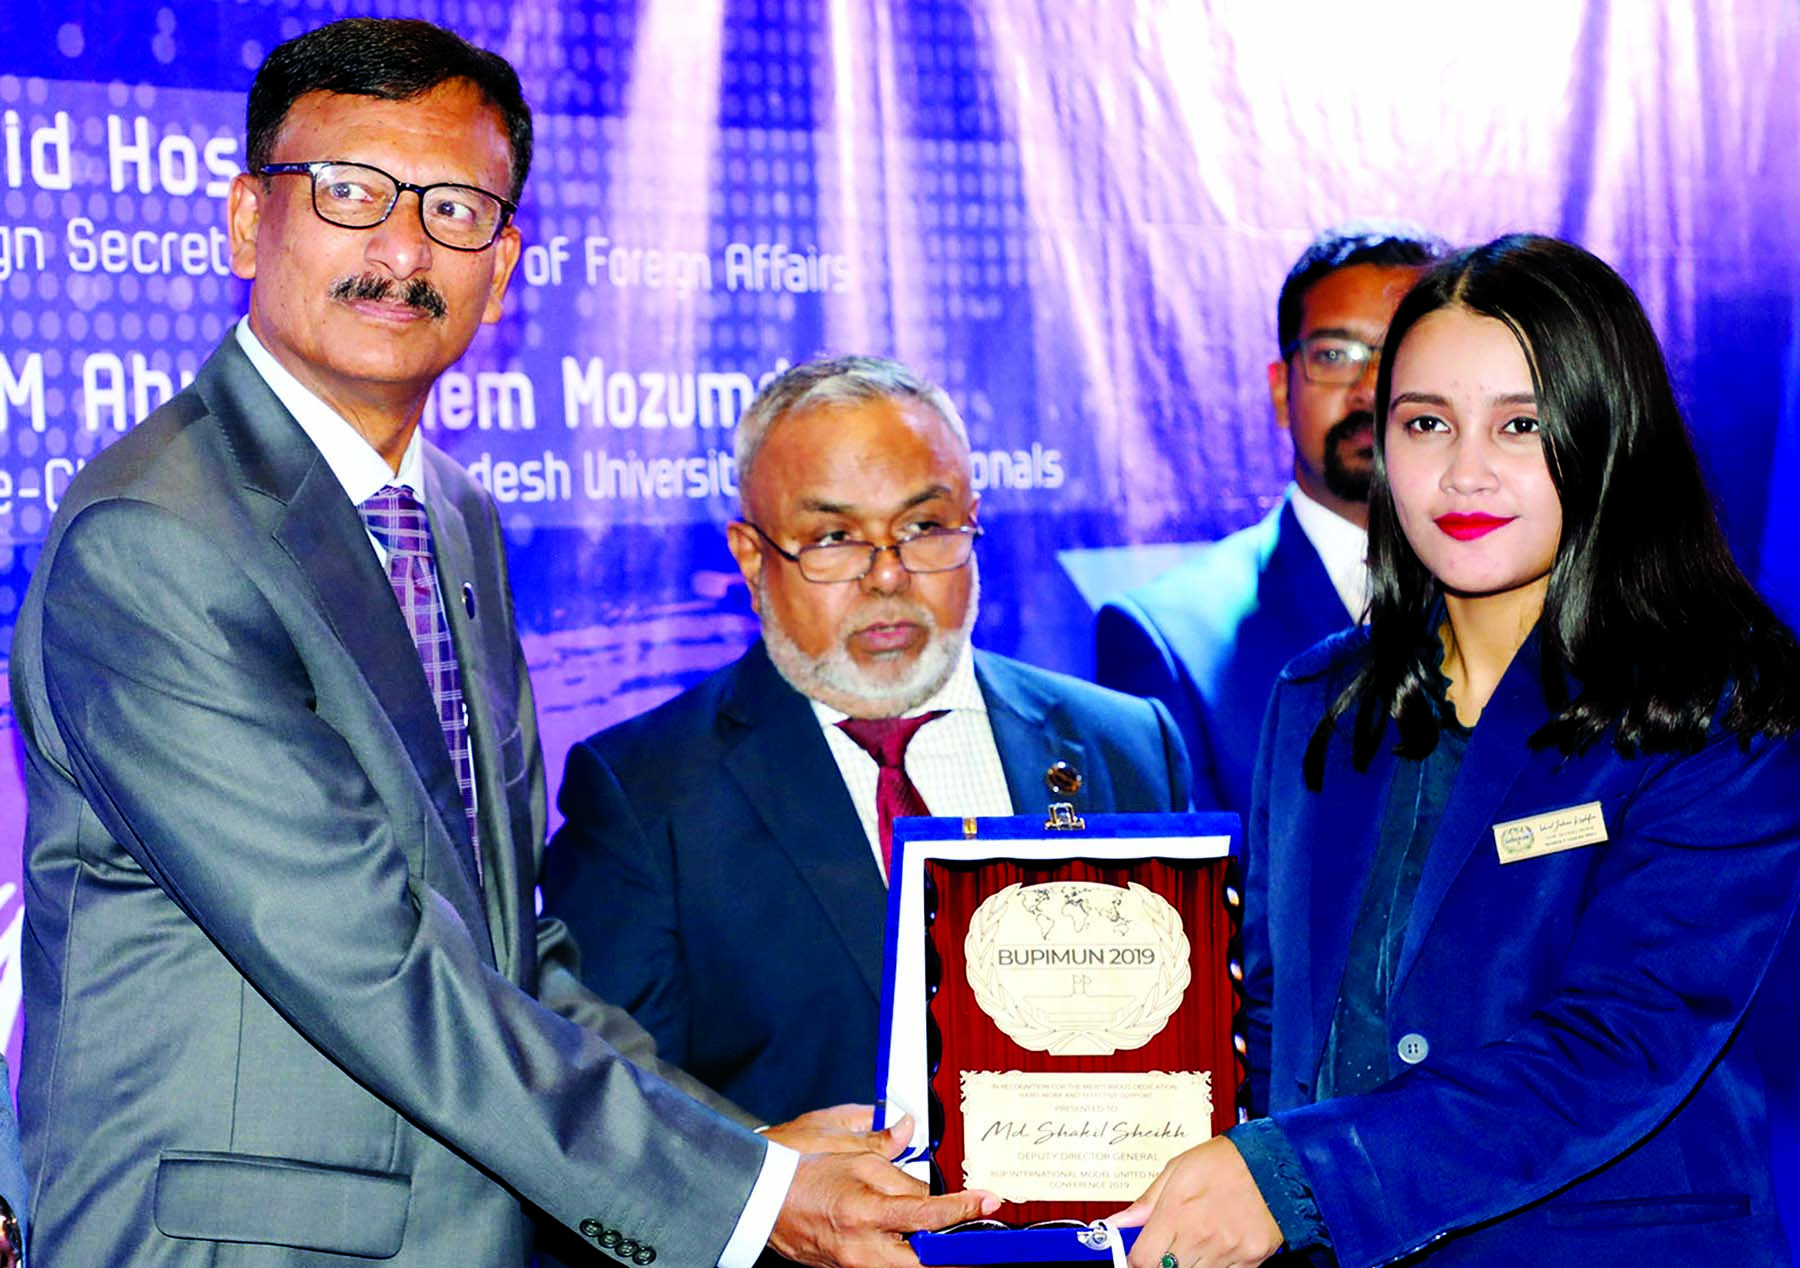 Former Foreign Secretary M Touhid Hossain distributing prizes as Chief Guest among the representatives attended at BUP International Model Institute Nations Conference on Saturday.